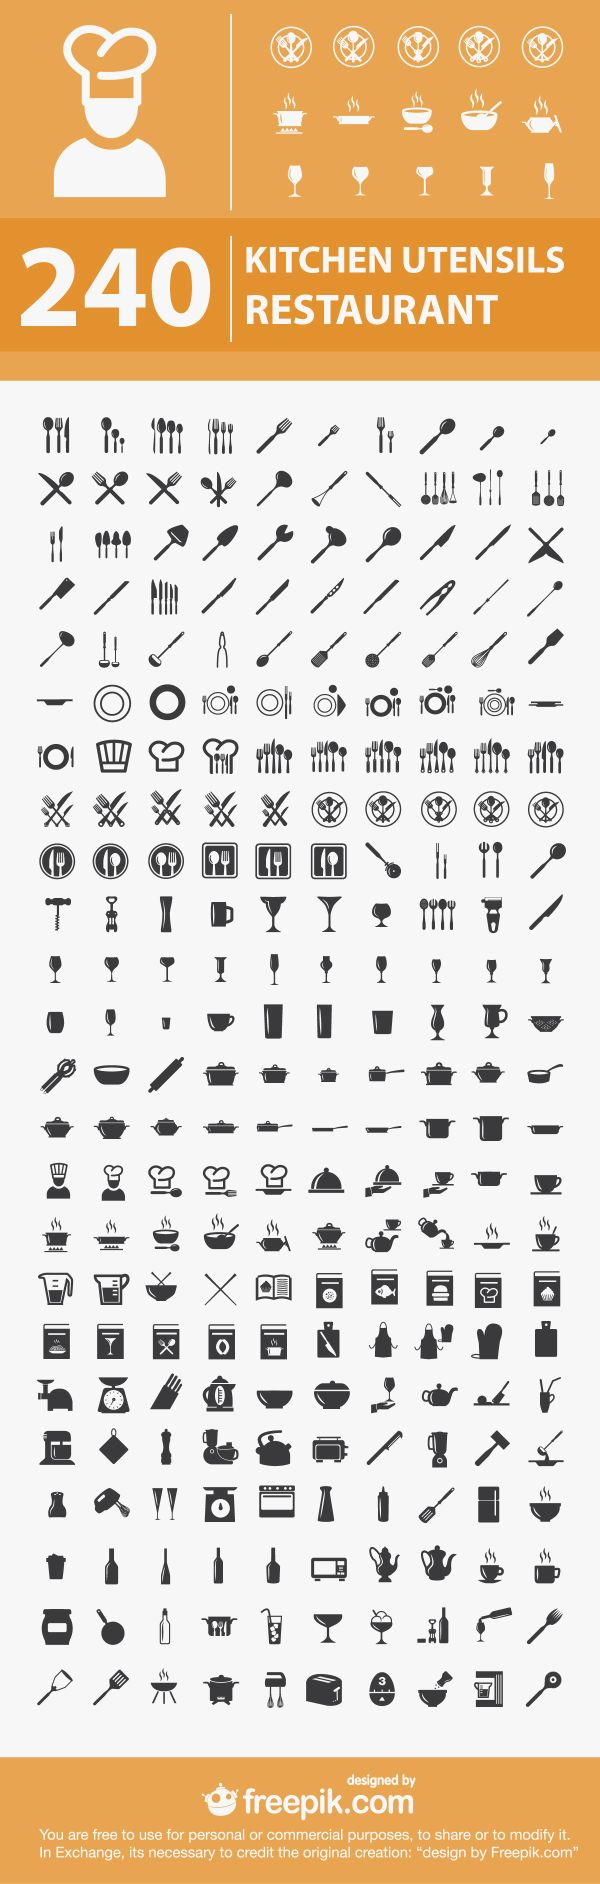 free kitchen and restaurant icons